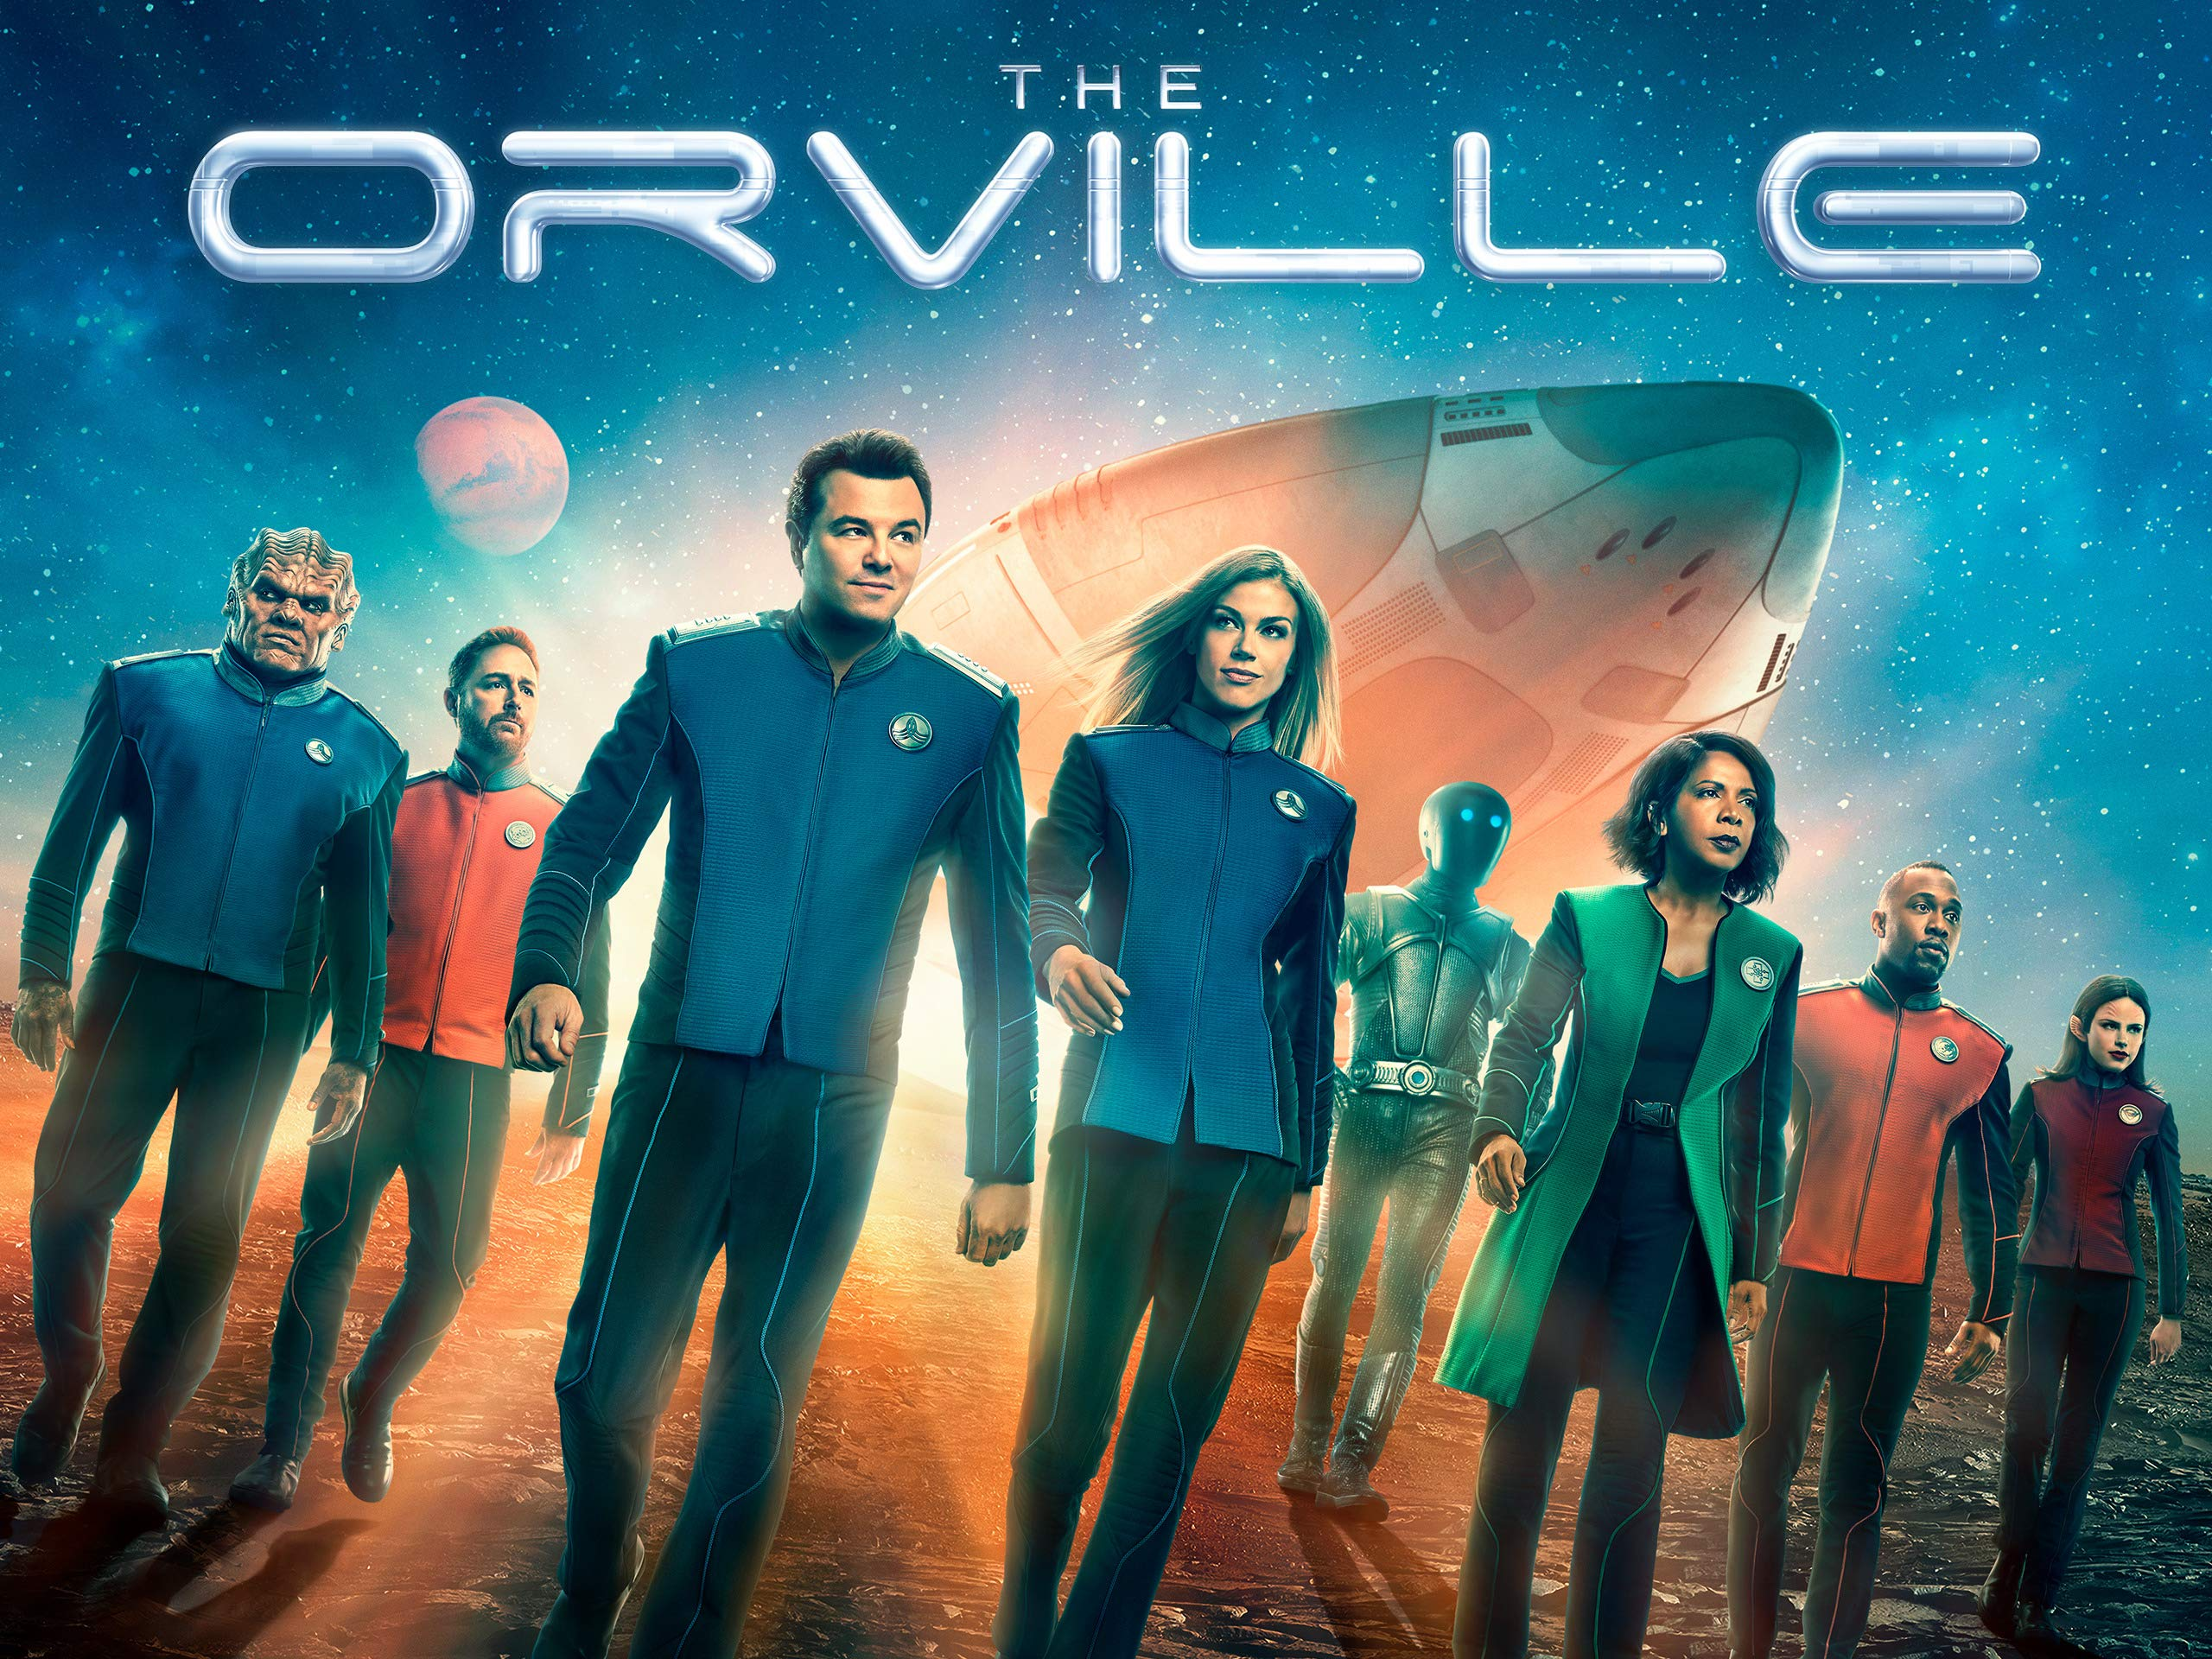 Seth MacFarlane's The Orville will be a Hulu next season